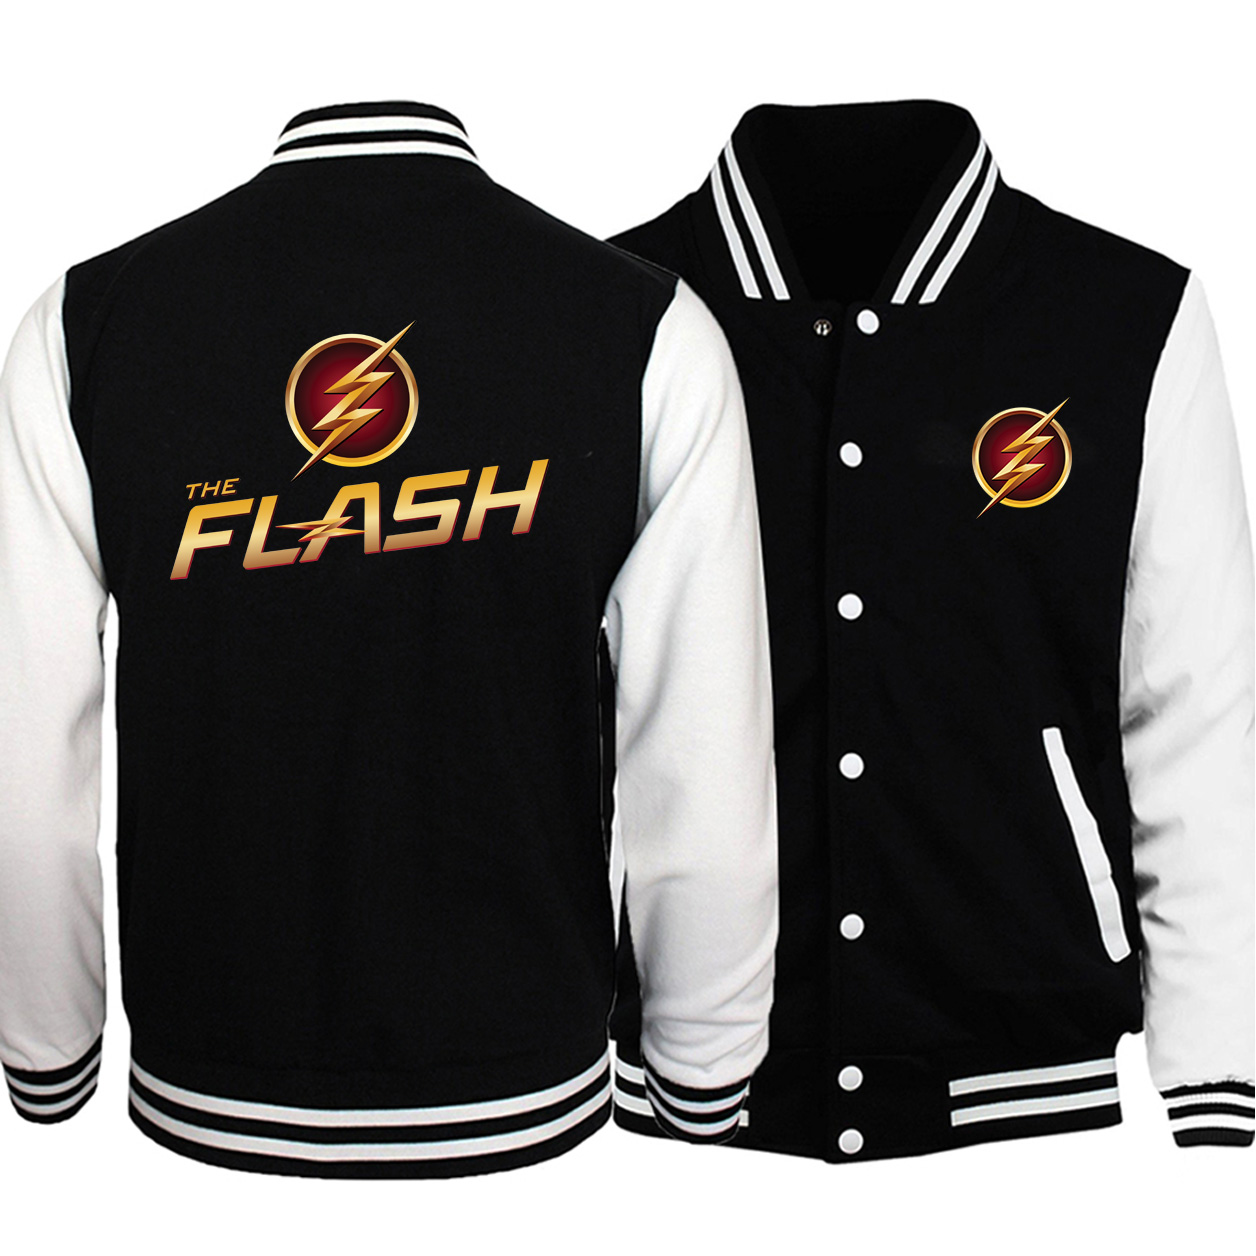 The Flash Baseball Uniform Superhero Barry Allen Jacket Men Jackets STAR Coat 2019 Autumn Fleece Superhero Sportswear Streetwear